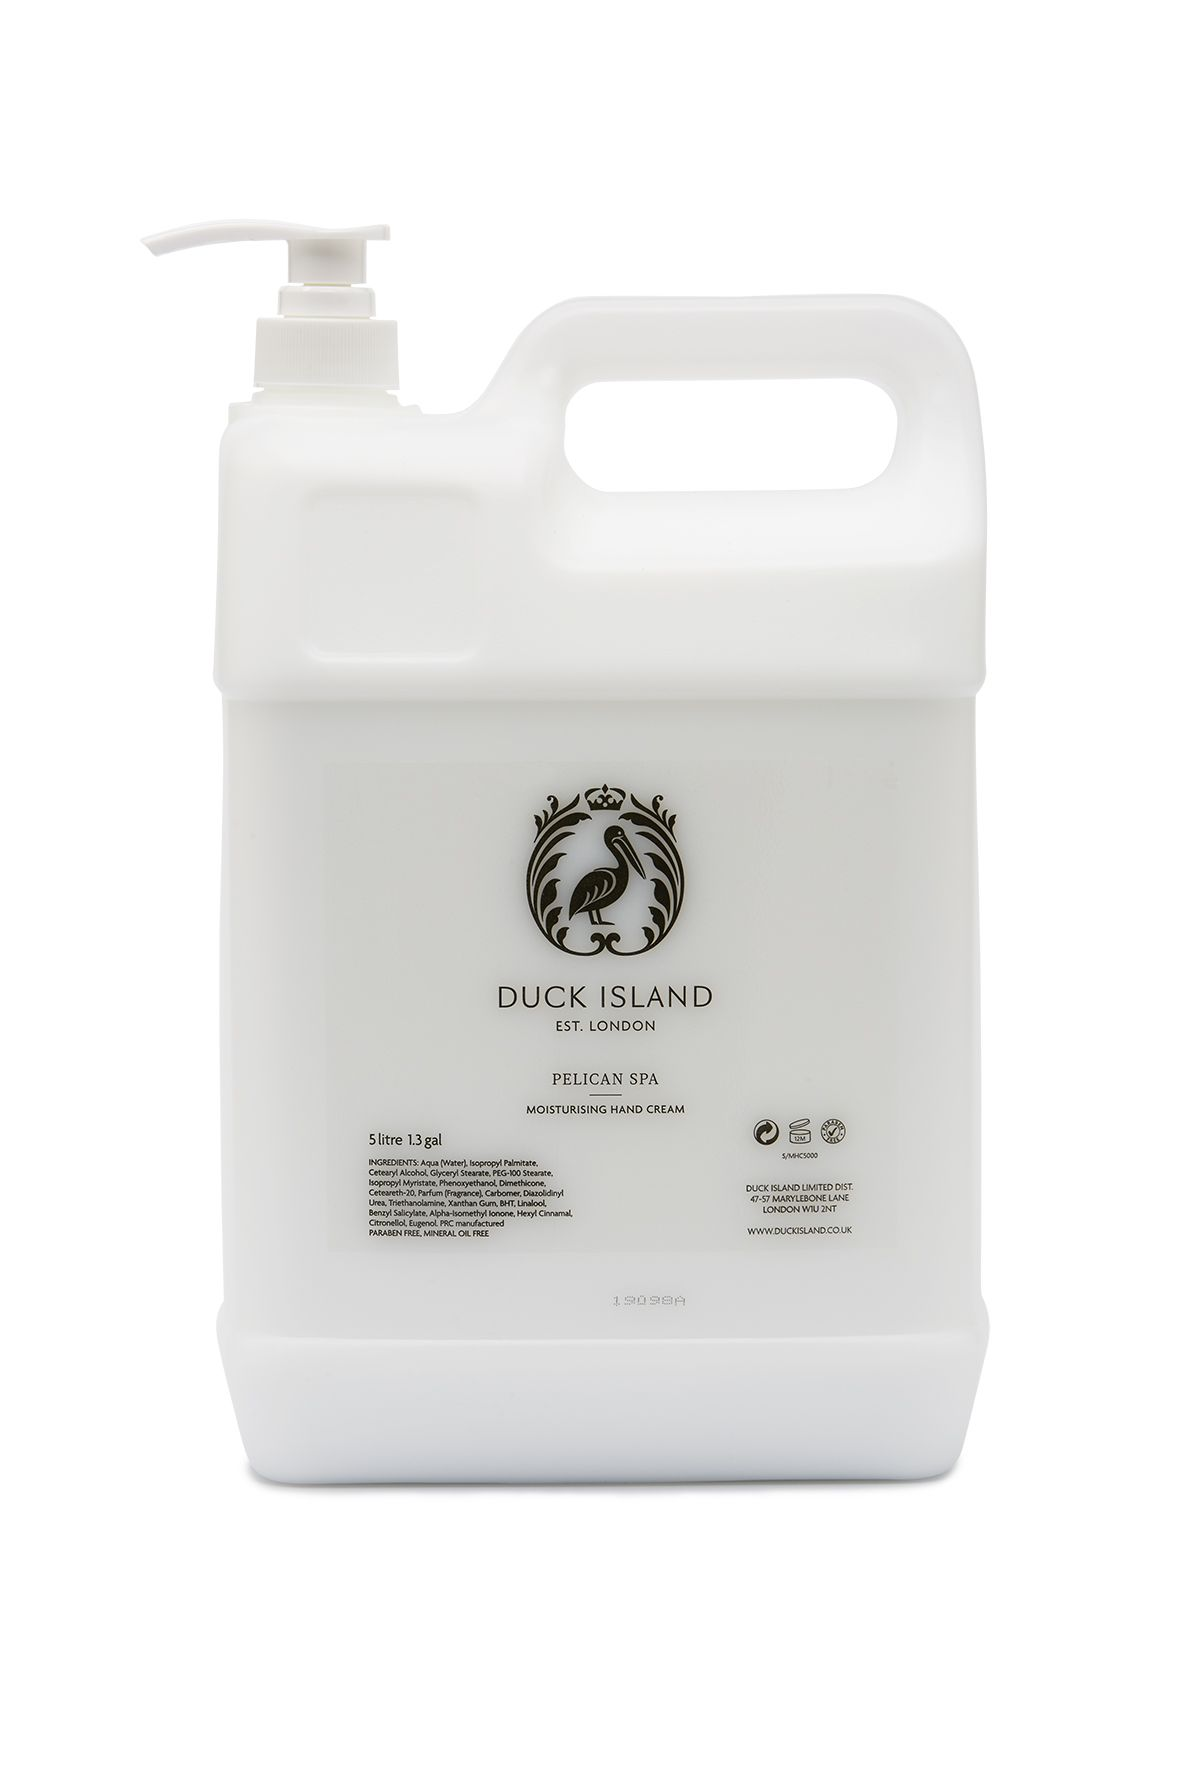 Duck Island Pelican Spa 5L Hand Cream